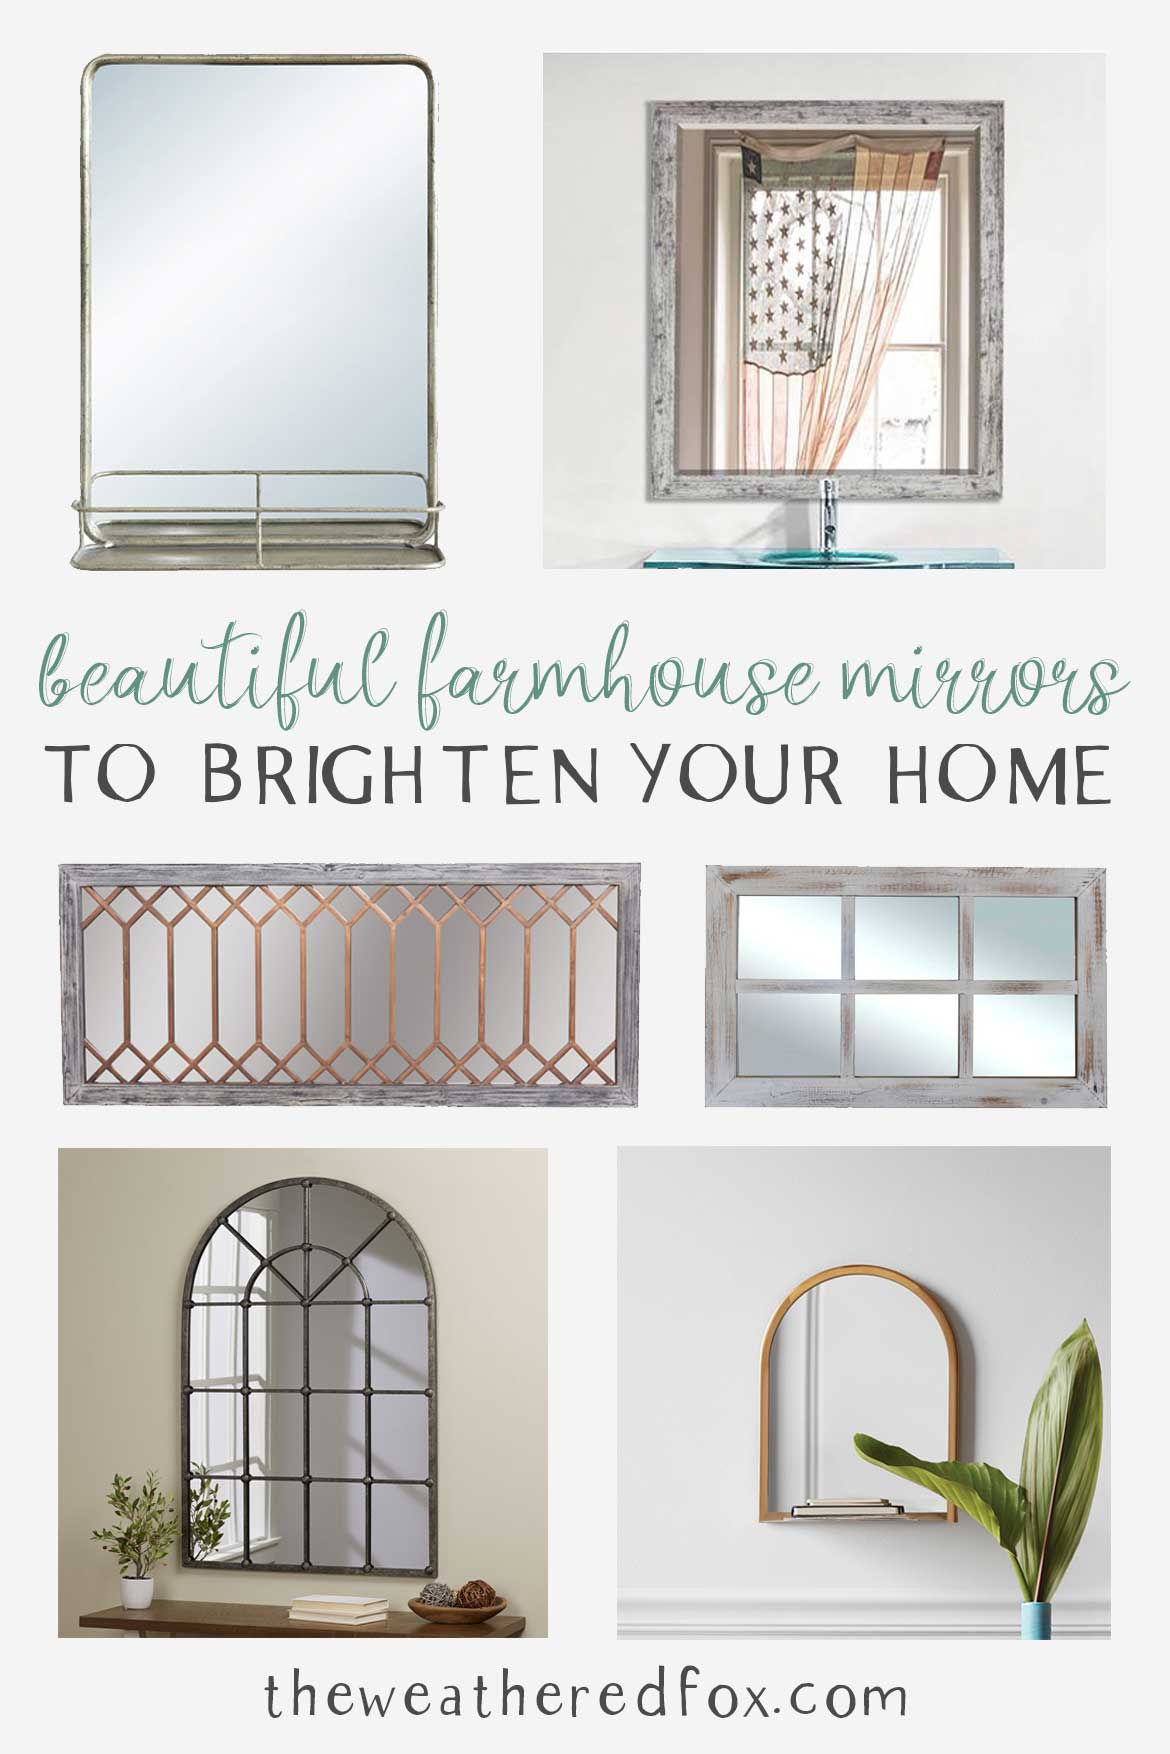 Beautiful farmhouse mirrors to brighten your home!